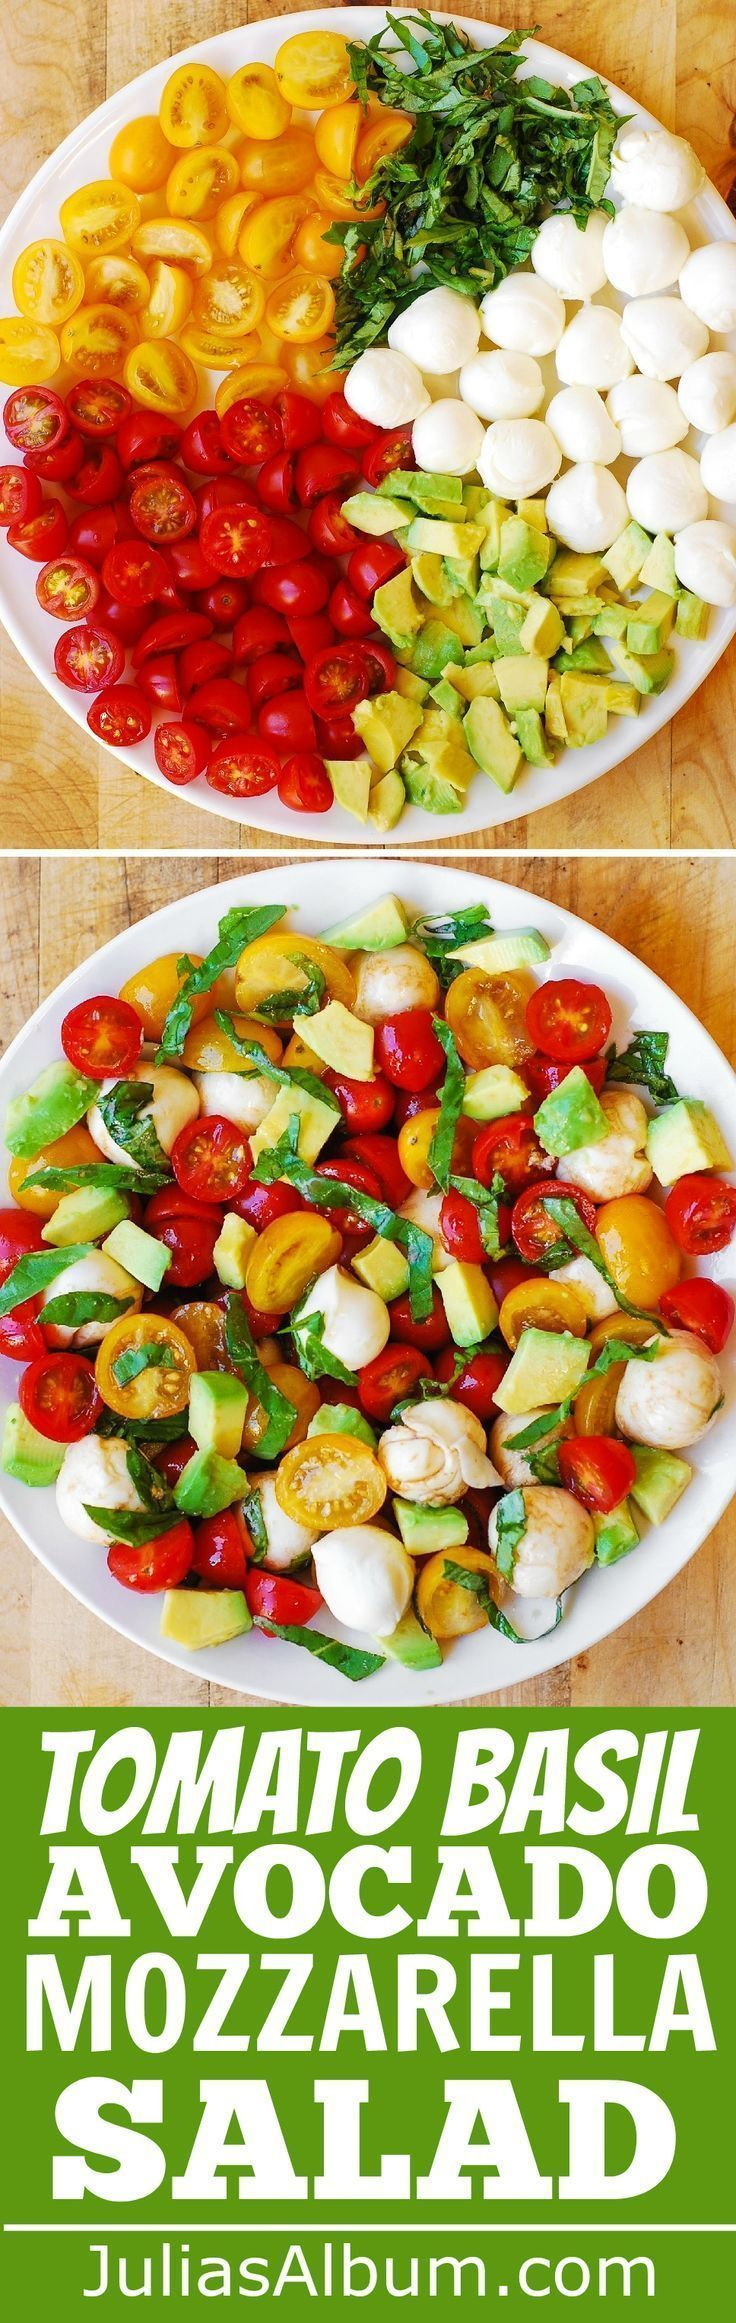 ... side dishes on Pinterest | Healthy recipes, Salad recipes and Salads